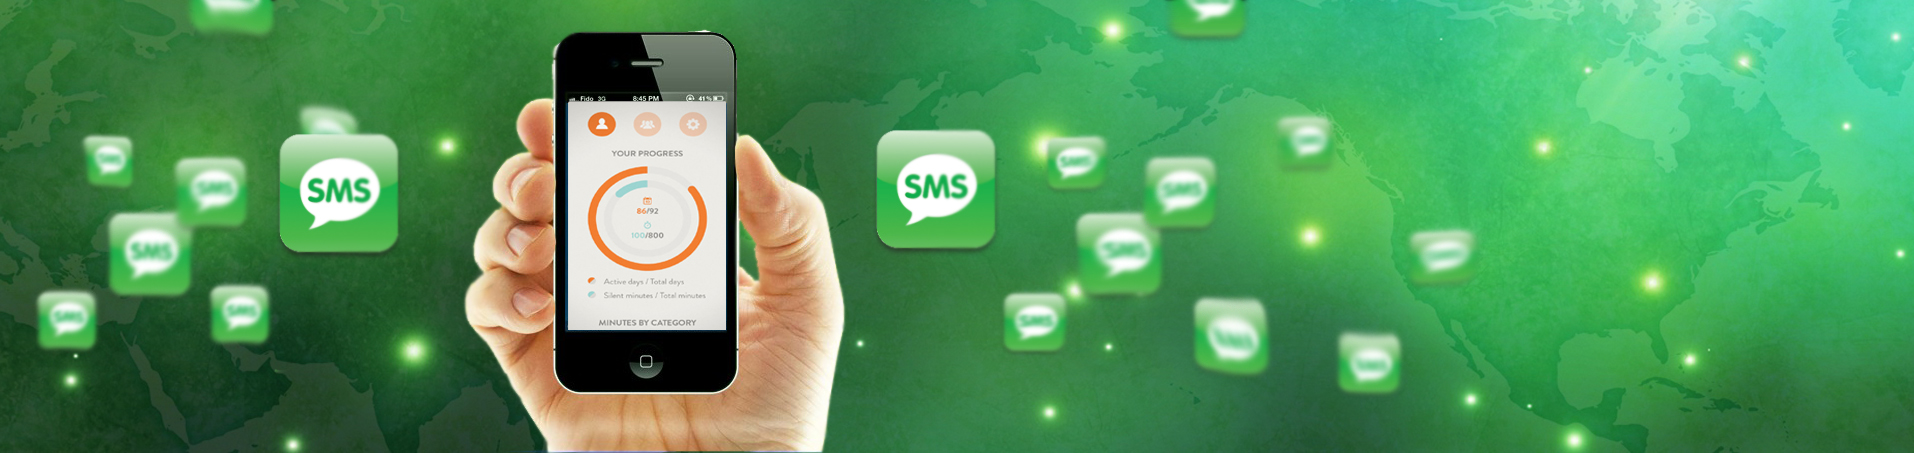 Free SMS Services In Bangladesh | Online Free SMS Services In Dhaka